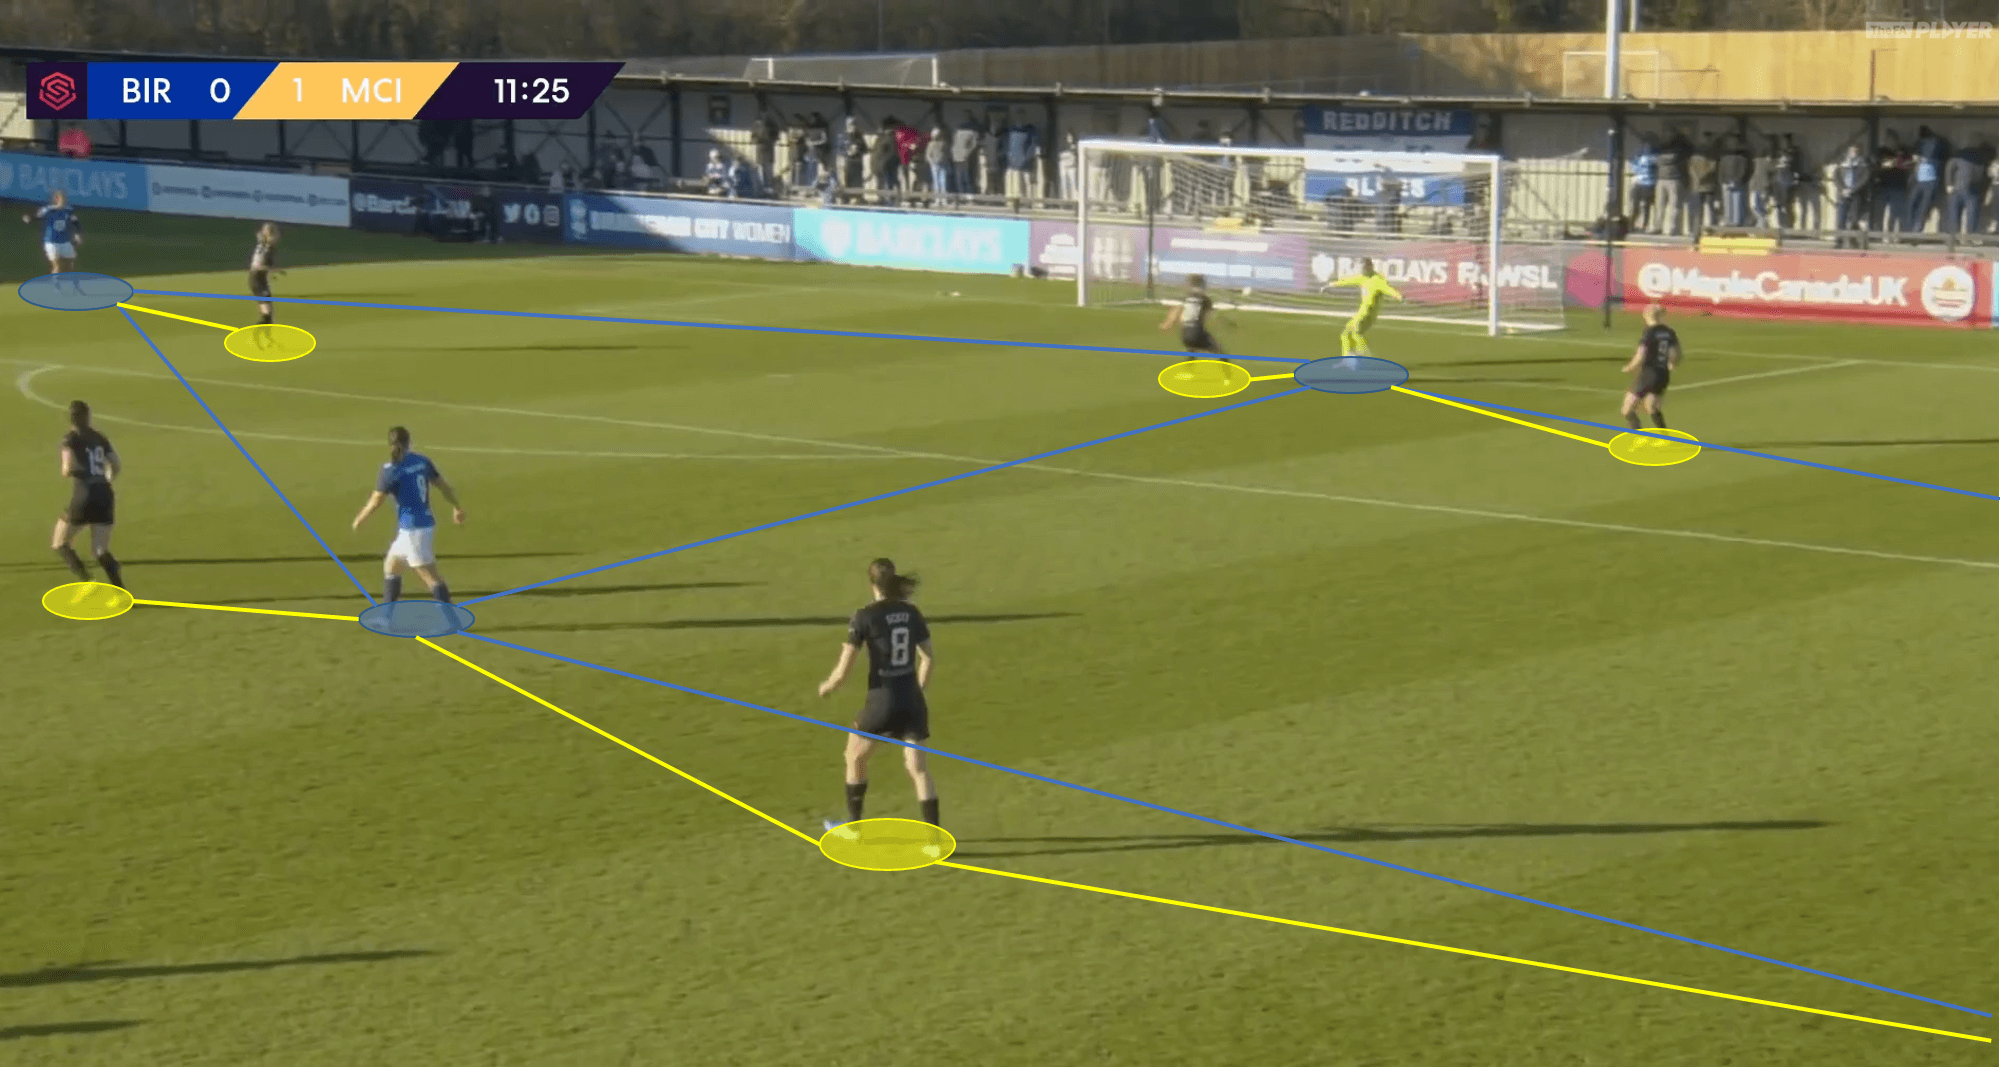 FAWSL 2019/20: Birmingham City LFC vs Manchester City Women - tactical analysis tactics